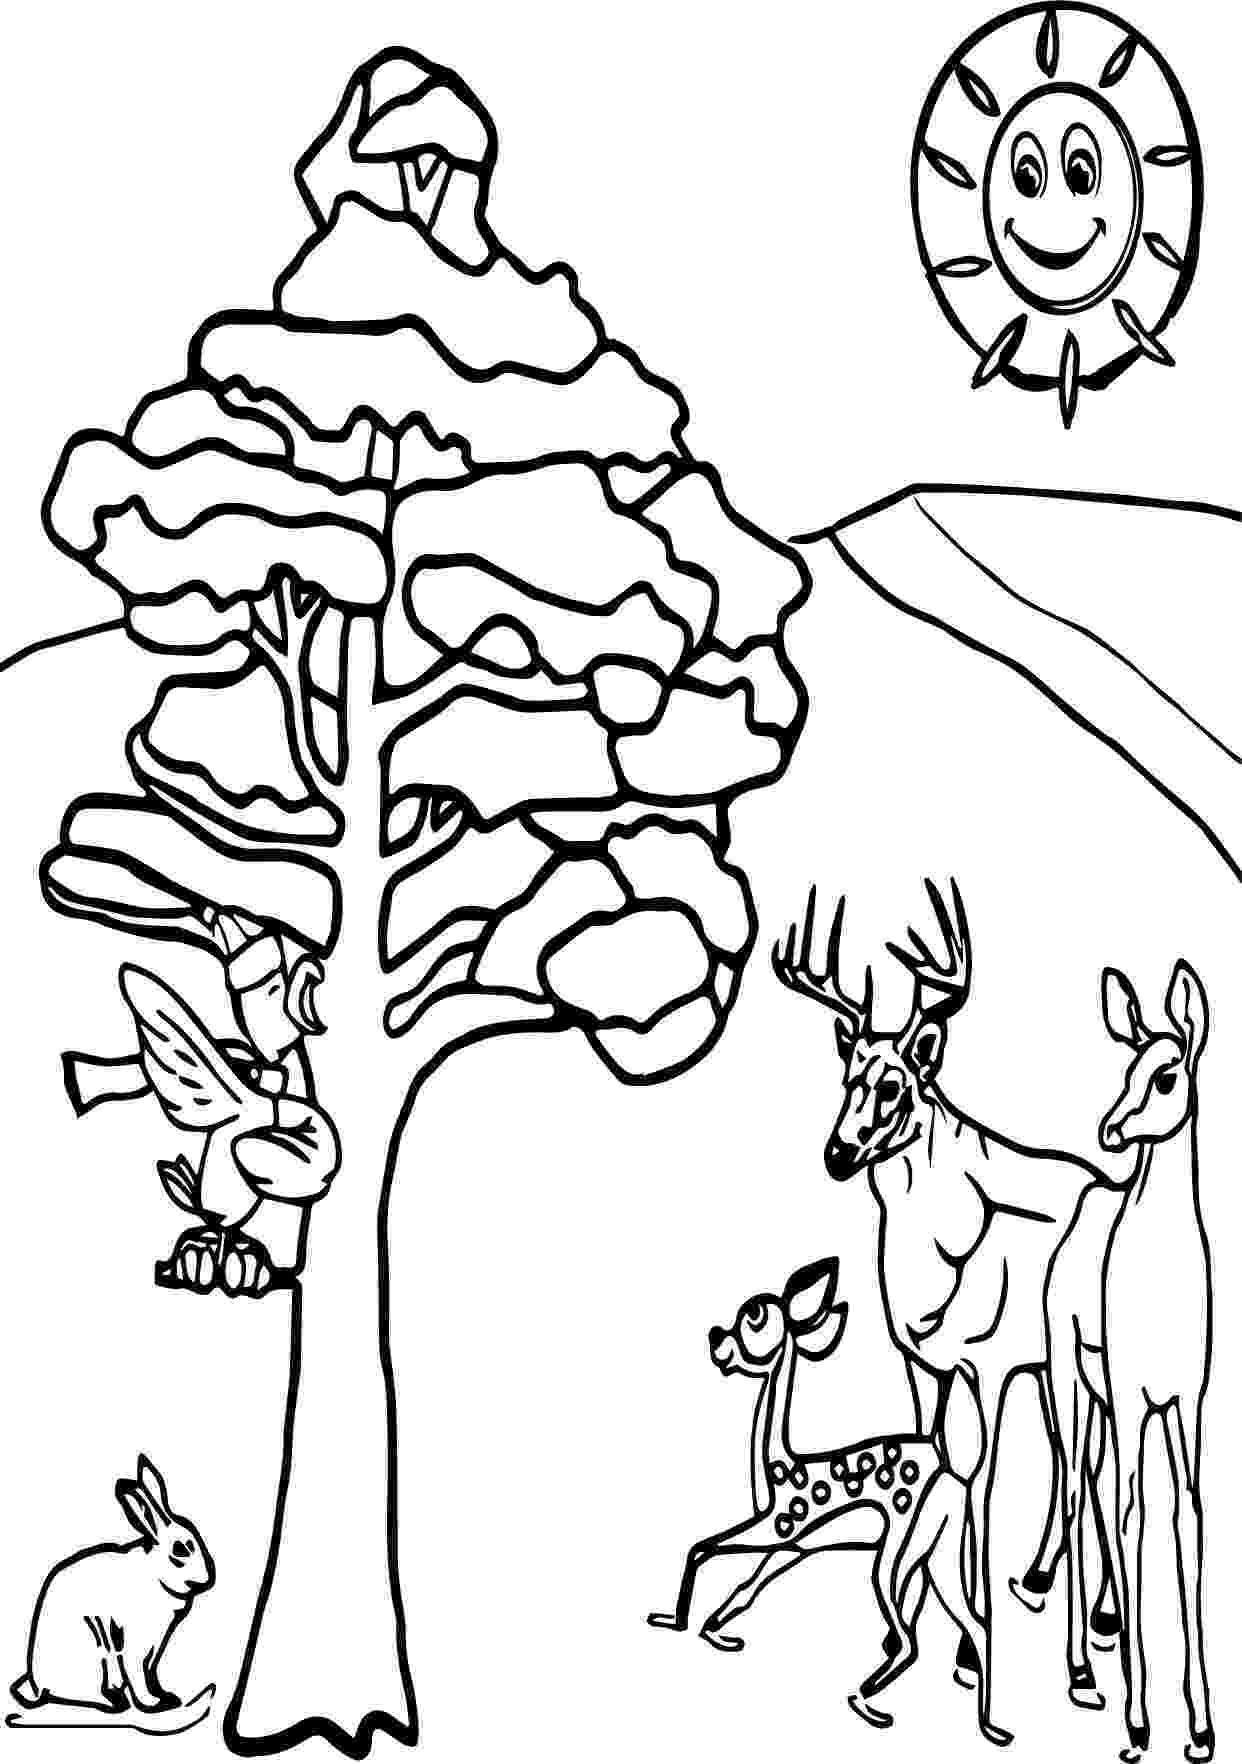 winter animals coloring pages animals in winter printable worksheets sketch coloring page winter animals coloring pages